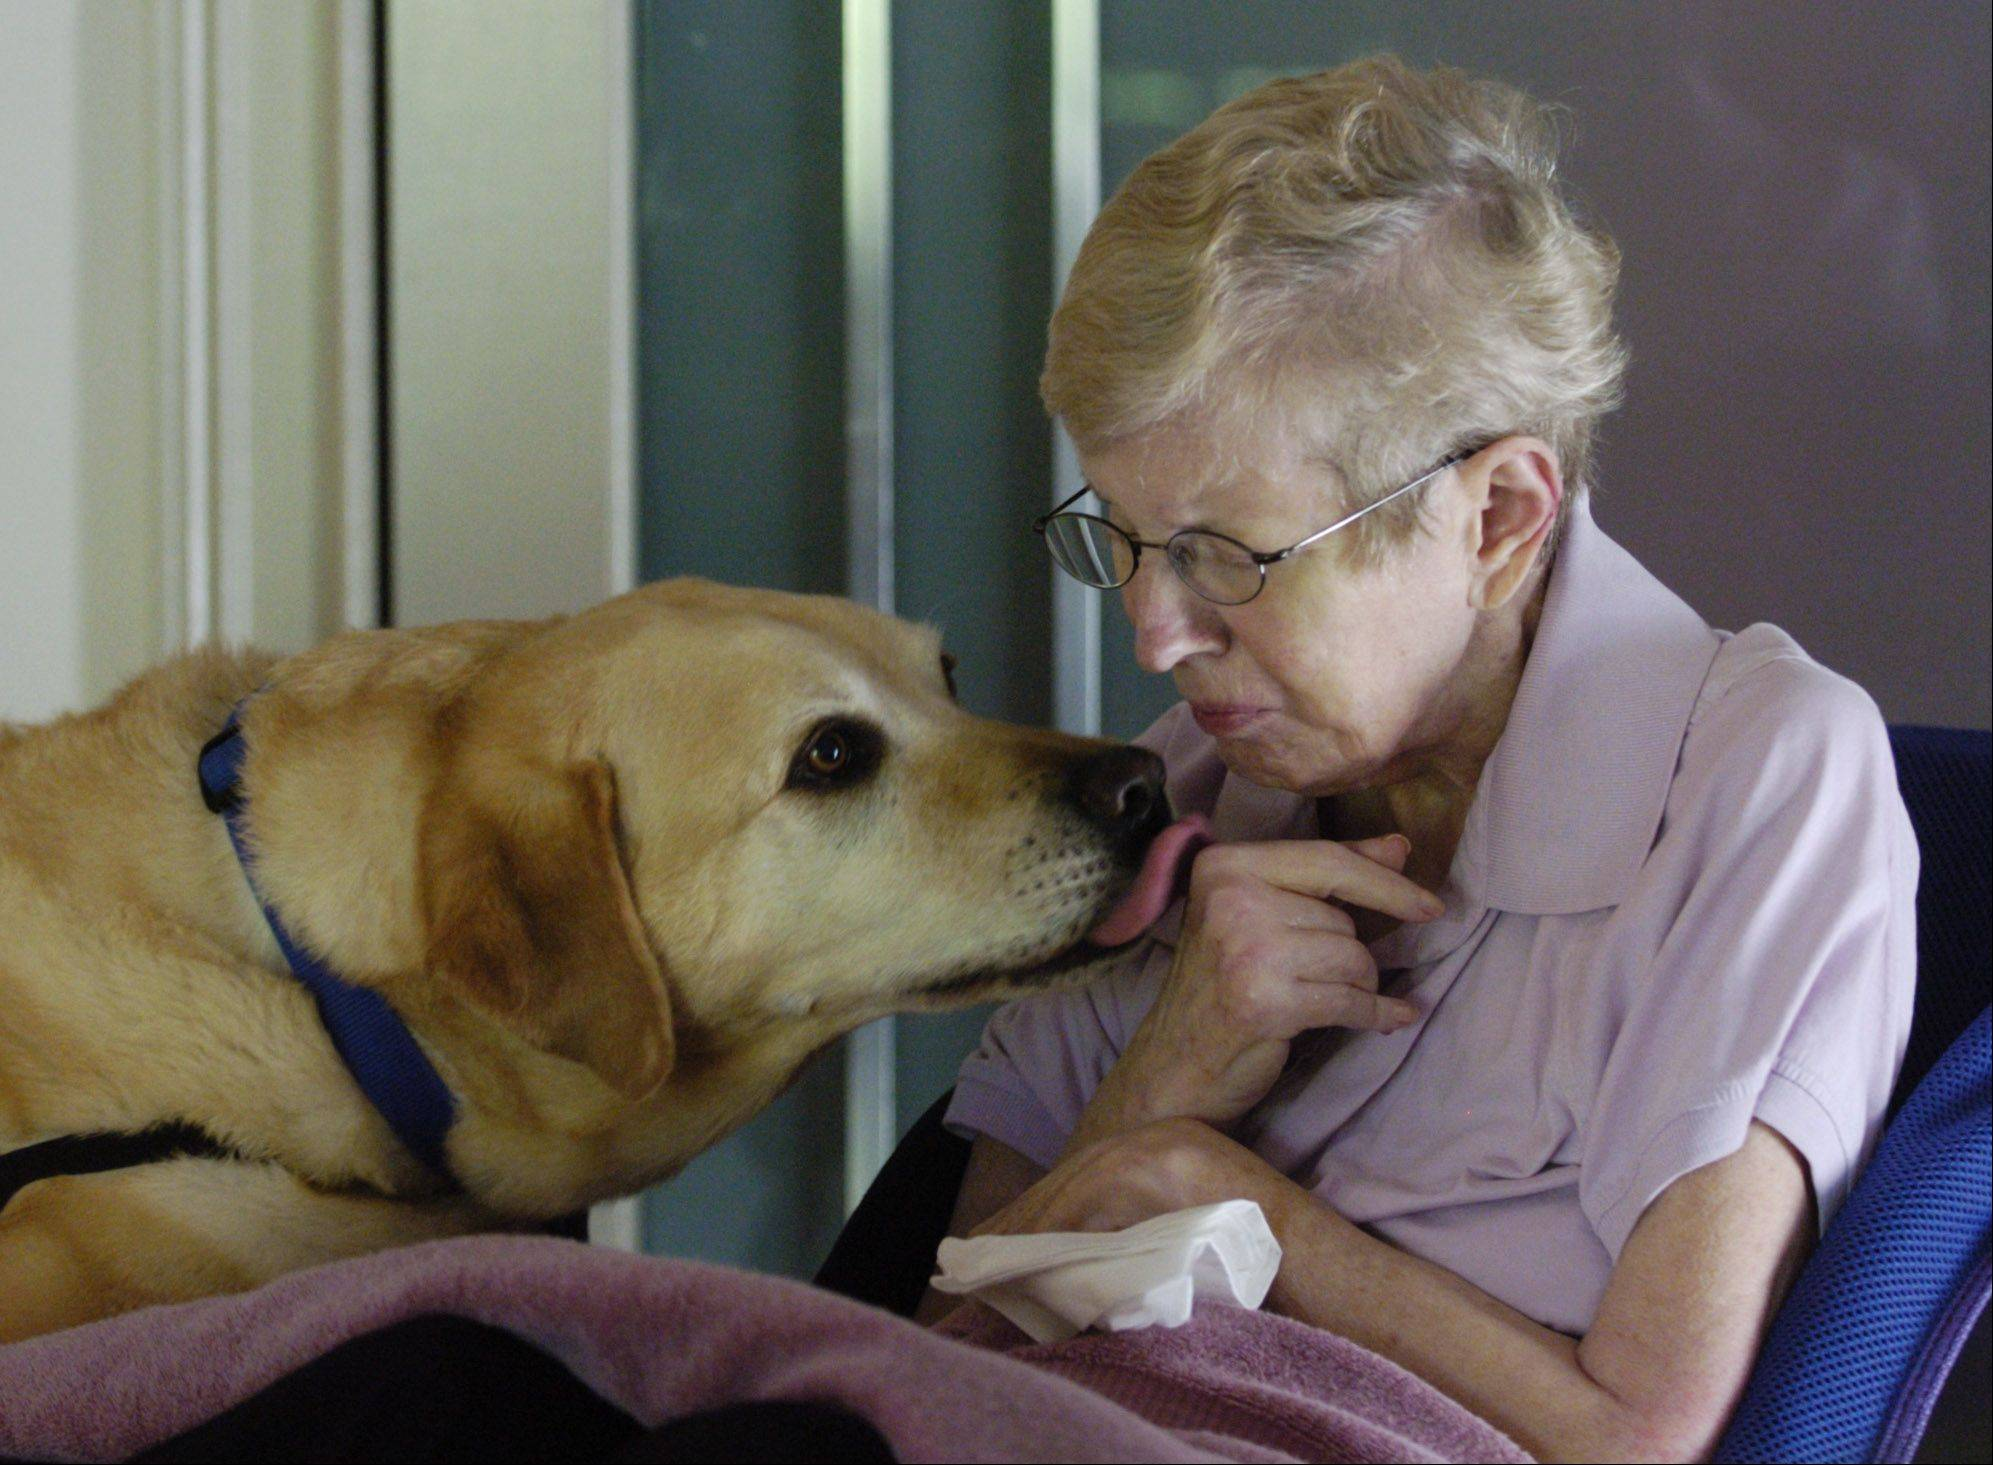 Patti Kennedy of Des Plaines died last week after succumbing to a rare brain stem disorder. Her constant companion and helper, Zurich, was a finalist in the service dog category of the American Humane Association Hero Dog Awards in 2011.